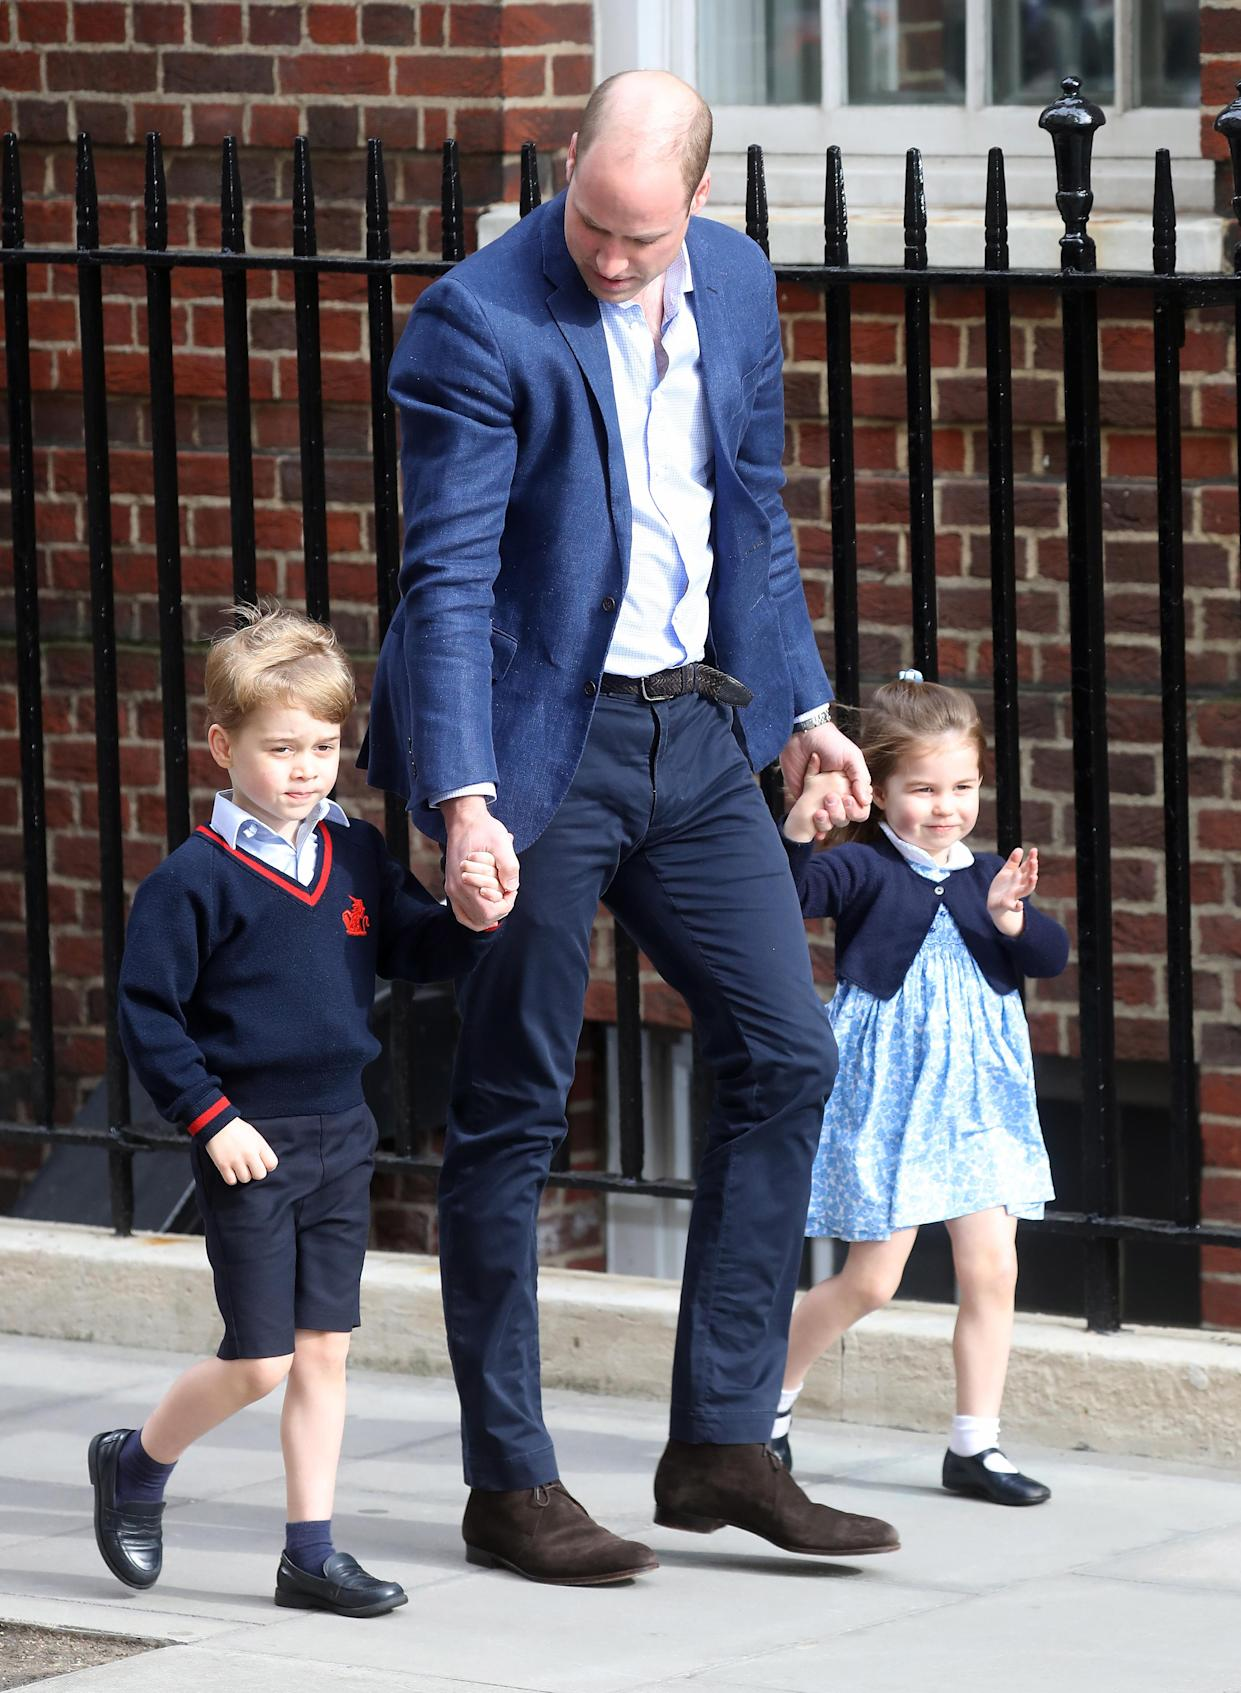 Prince William, Duke of Cambridge arrives with Prince George and Princess Charlotte at the Lindo Wing after Louis' birth. [Photo: Getty]